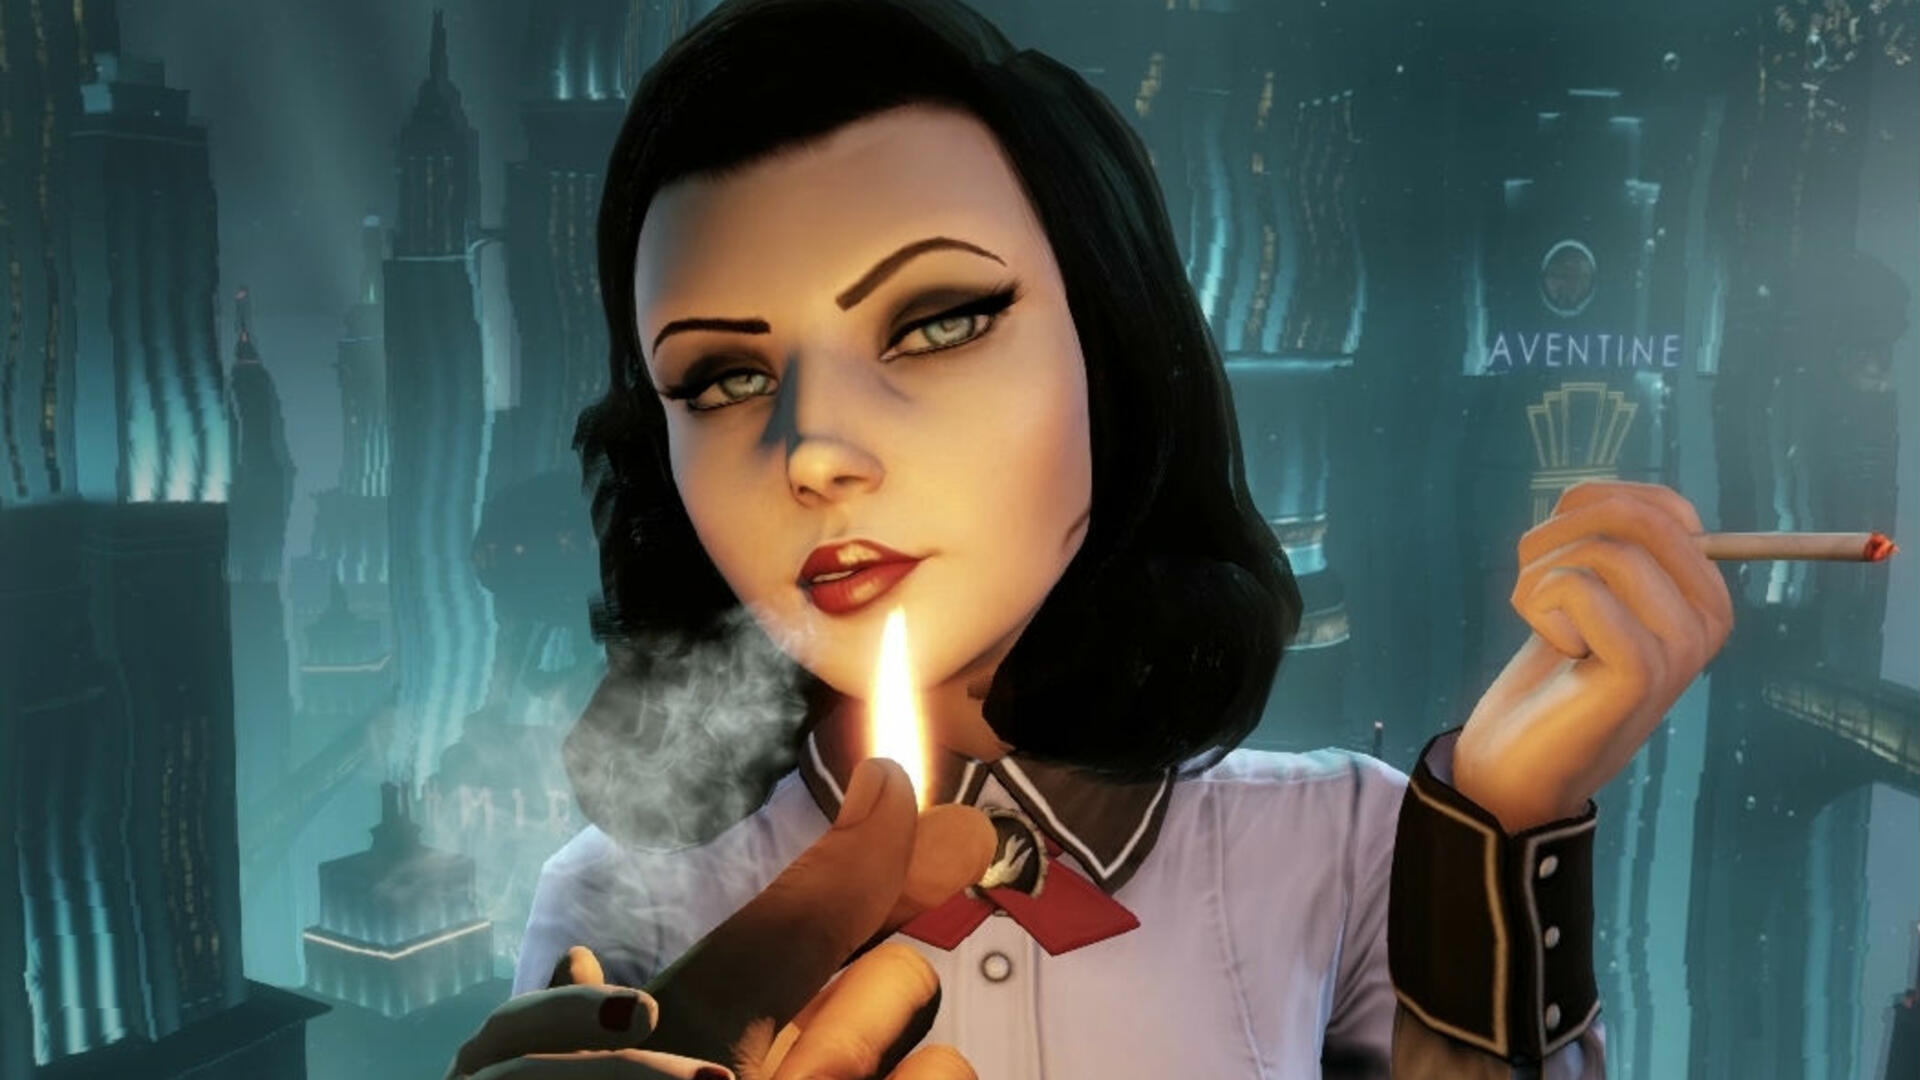 Report: New BioShock Game In the Works